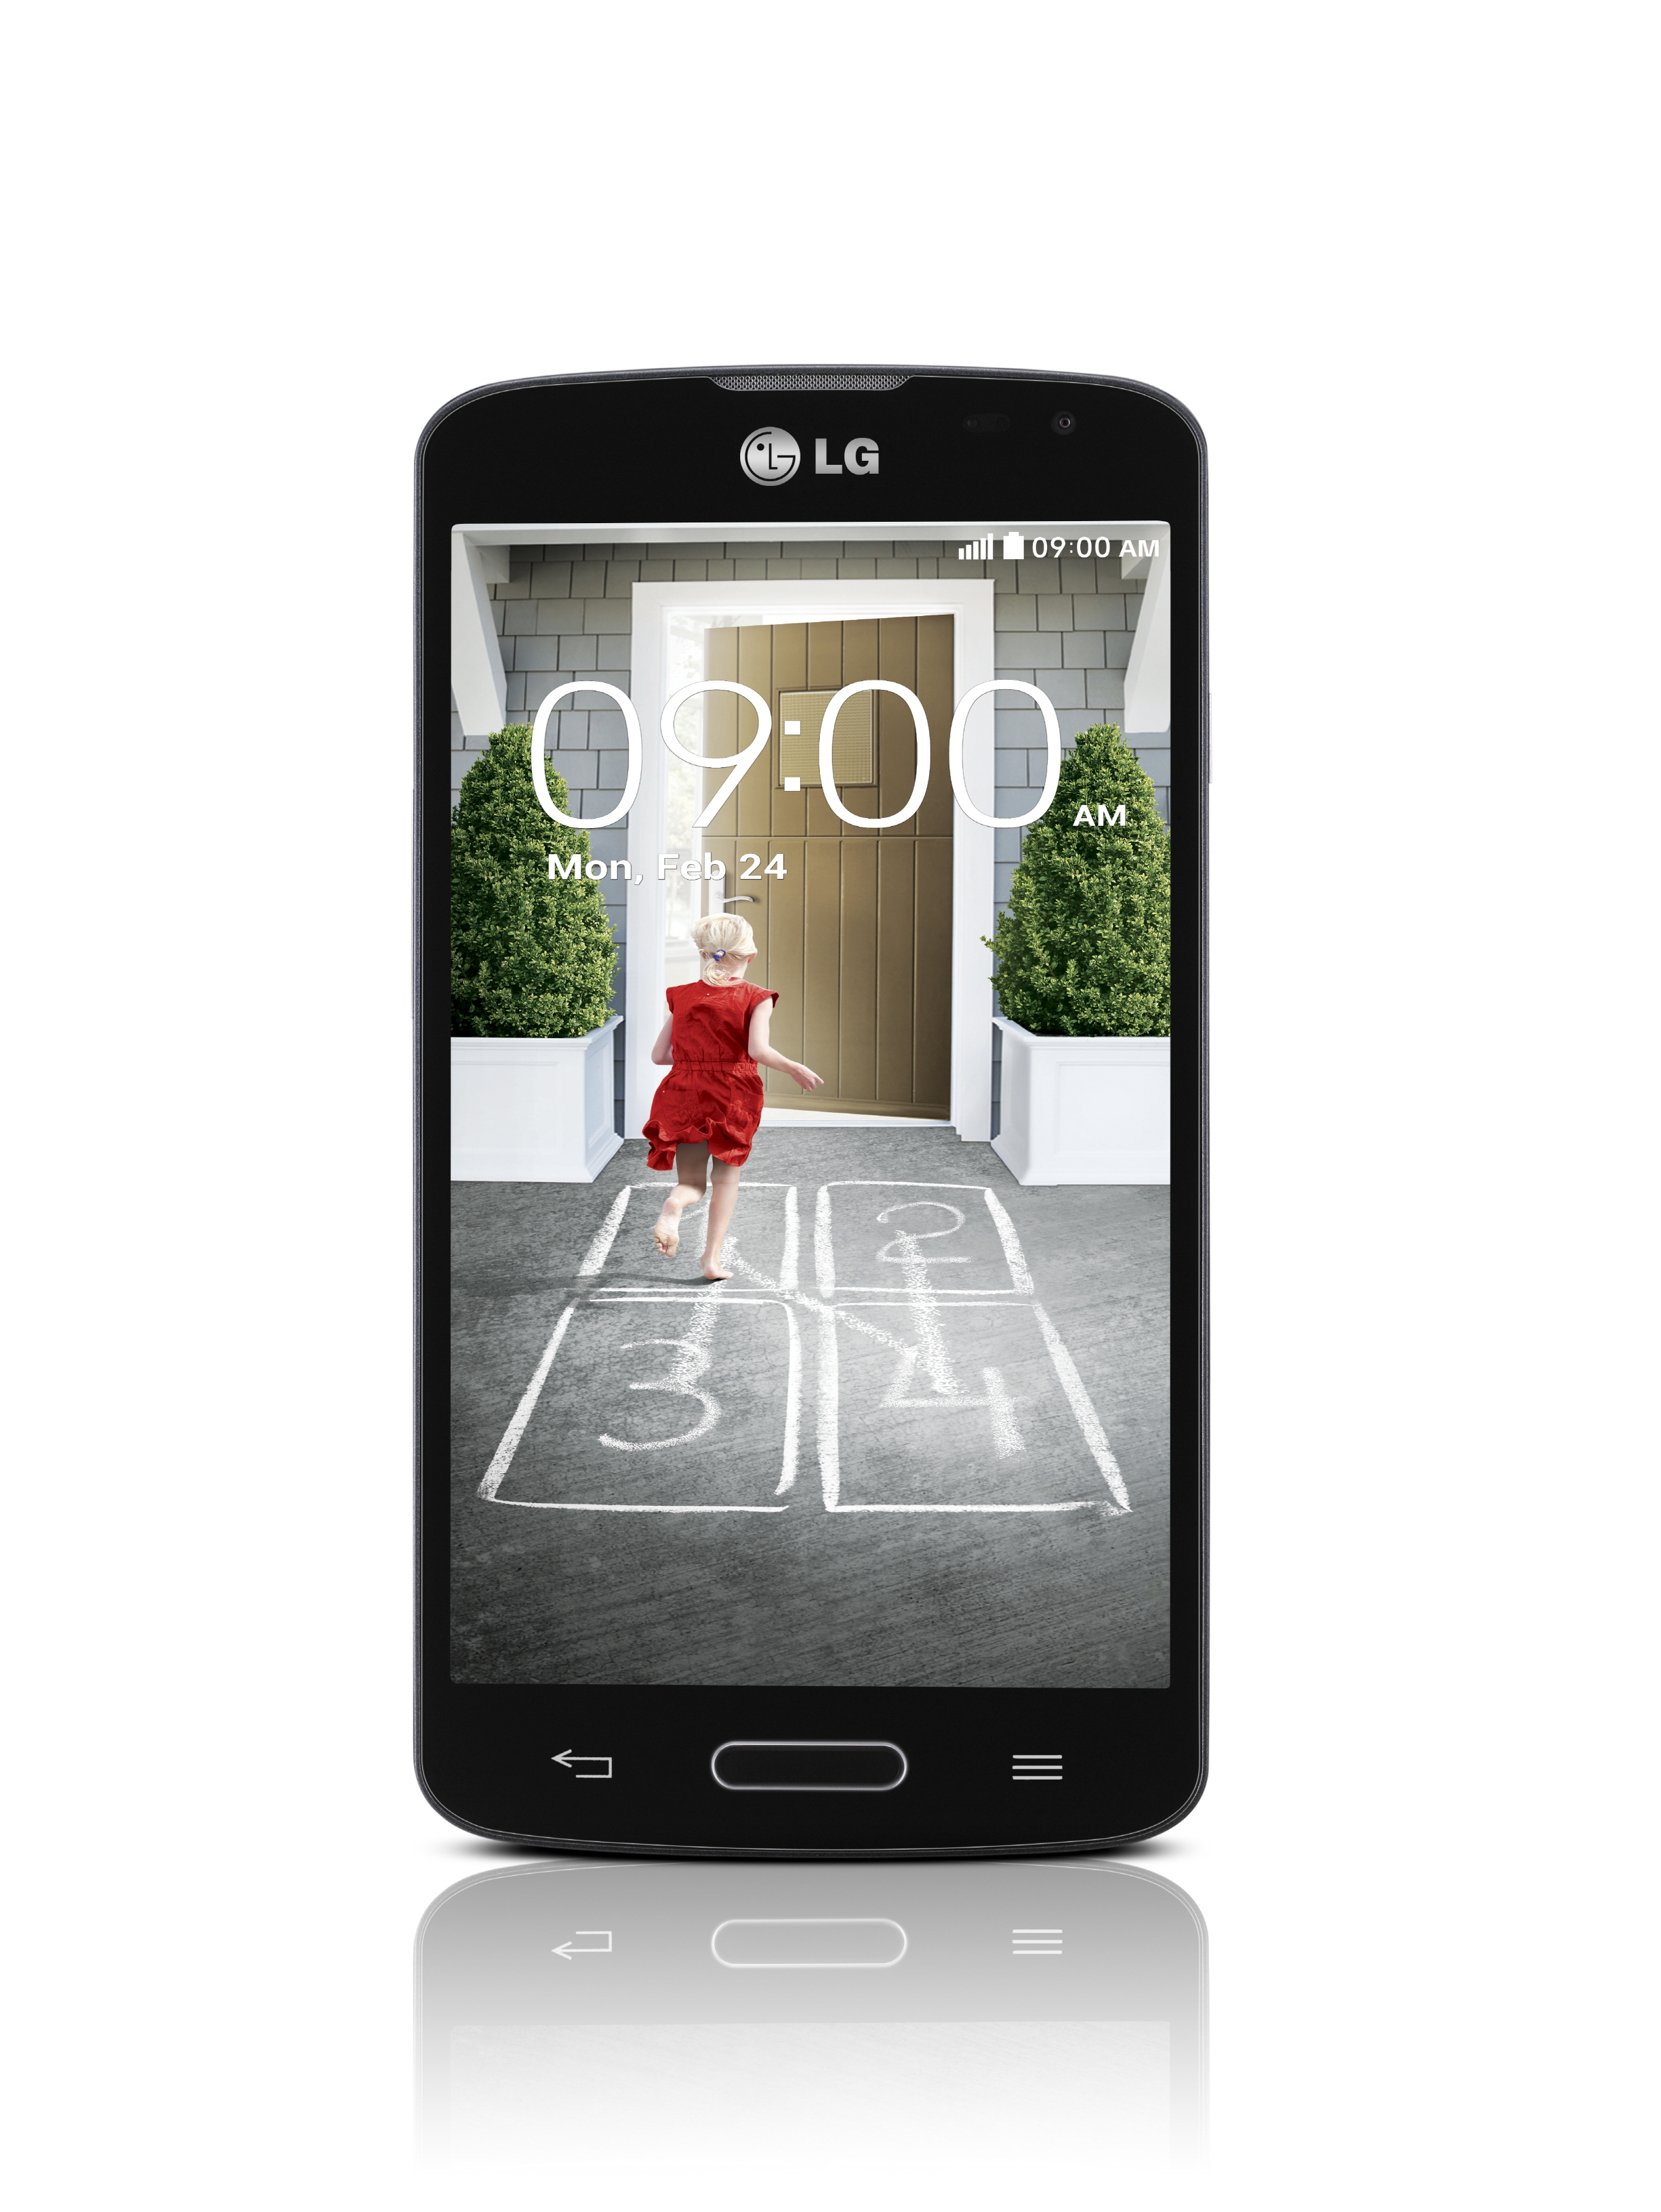 A front view of LG F70 in black color.